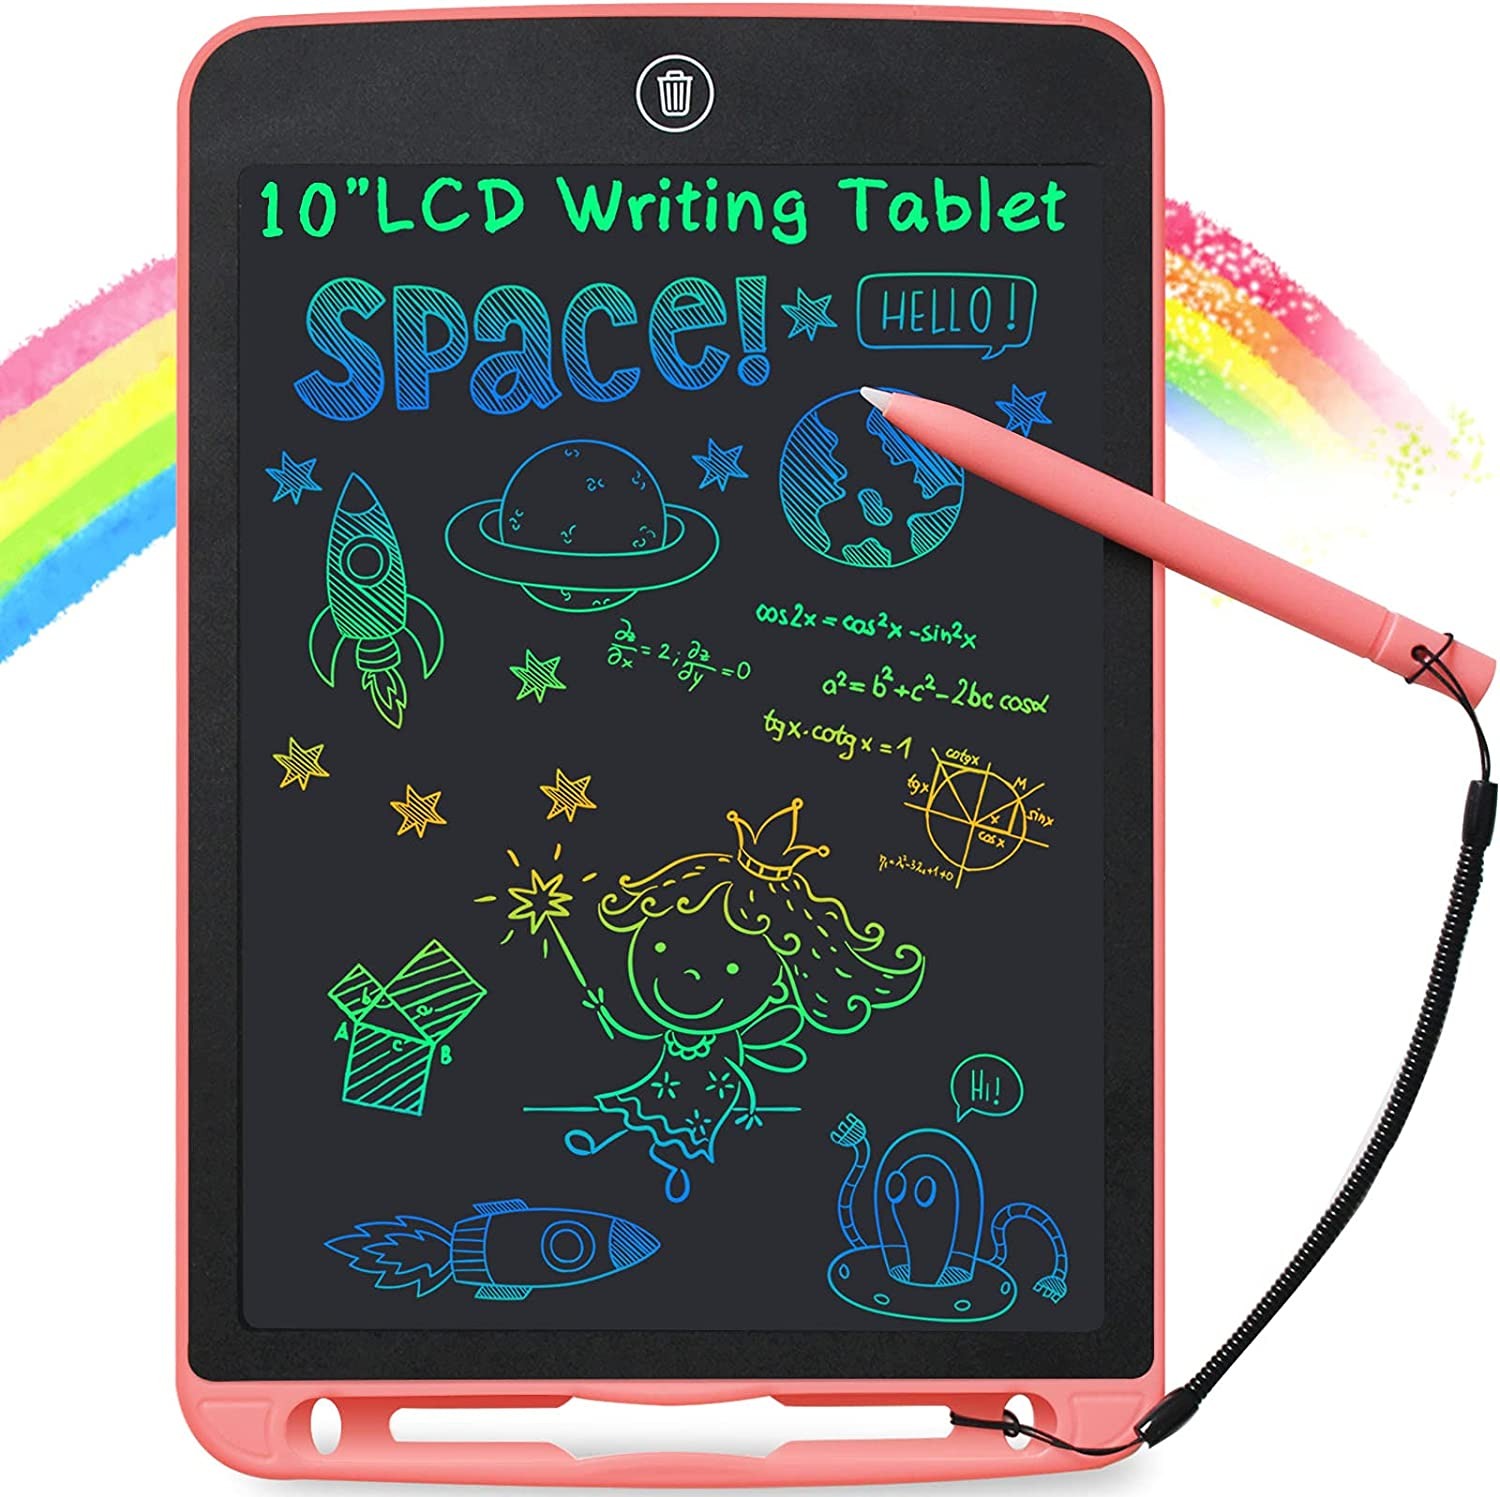 LUOWAN LCD Writing Tablet 10-Inch, Colorful Kids Drawing Pad, Writing Board Electronic Doodle Pad, Toddler Learning Toys for 3 4 5 6 Years Old Boys Girls Birthday Gift